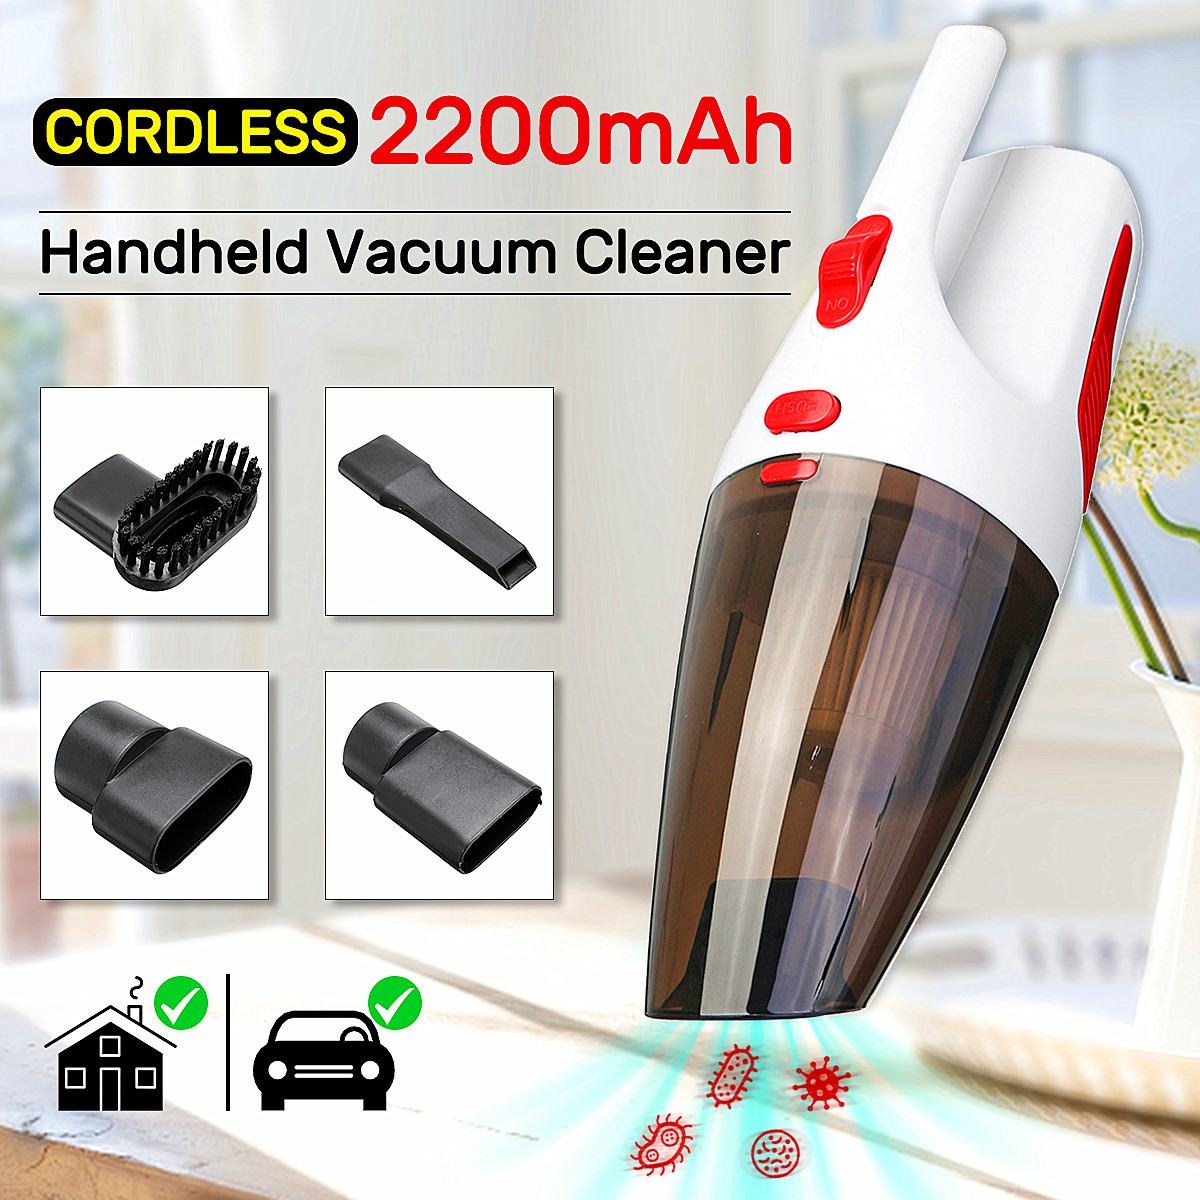 Portable Ac Vacuum 27 Lb Portable Countertop Ice Maker In Stainless Steel Portable Tool Box Steel Portable Light Table: 120W 100V 240V AC 5000PA Portable Cordless Handheld